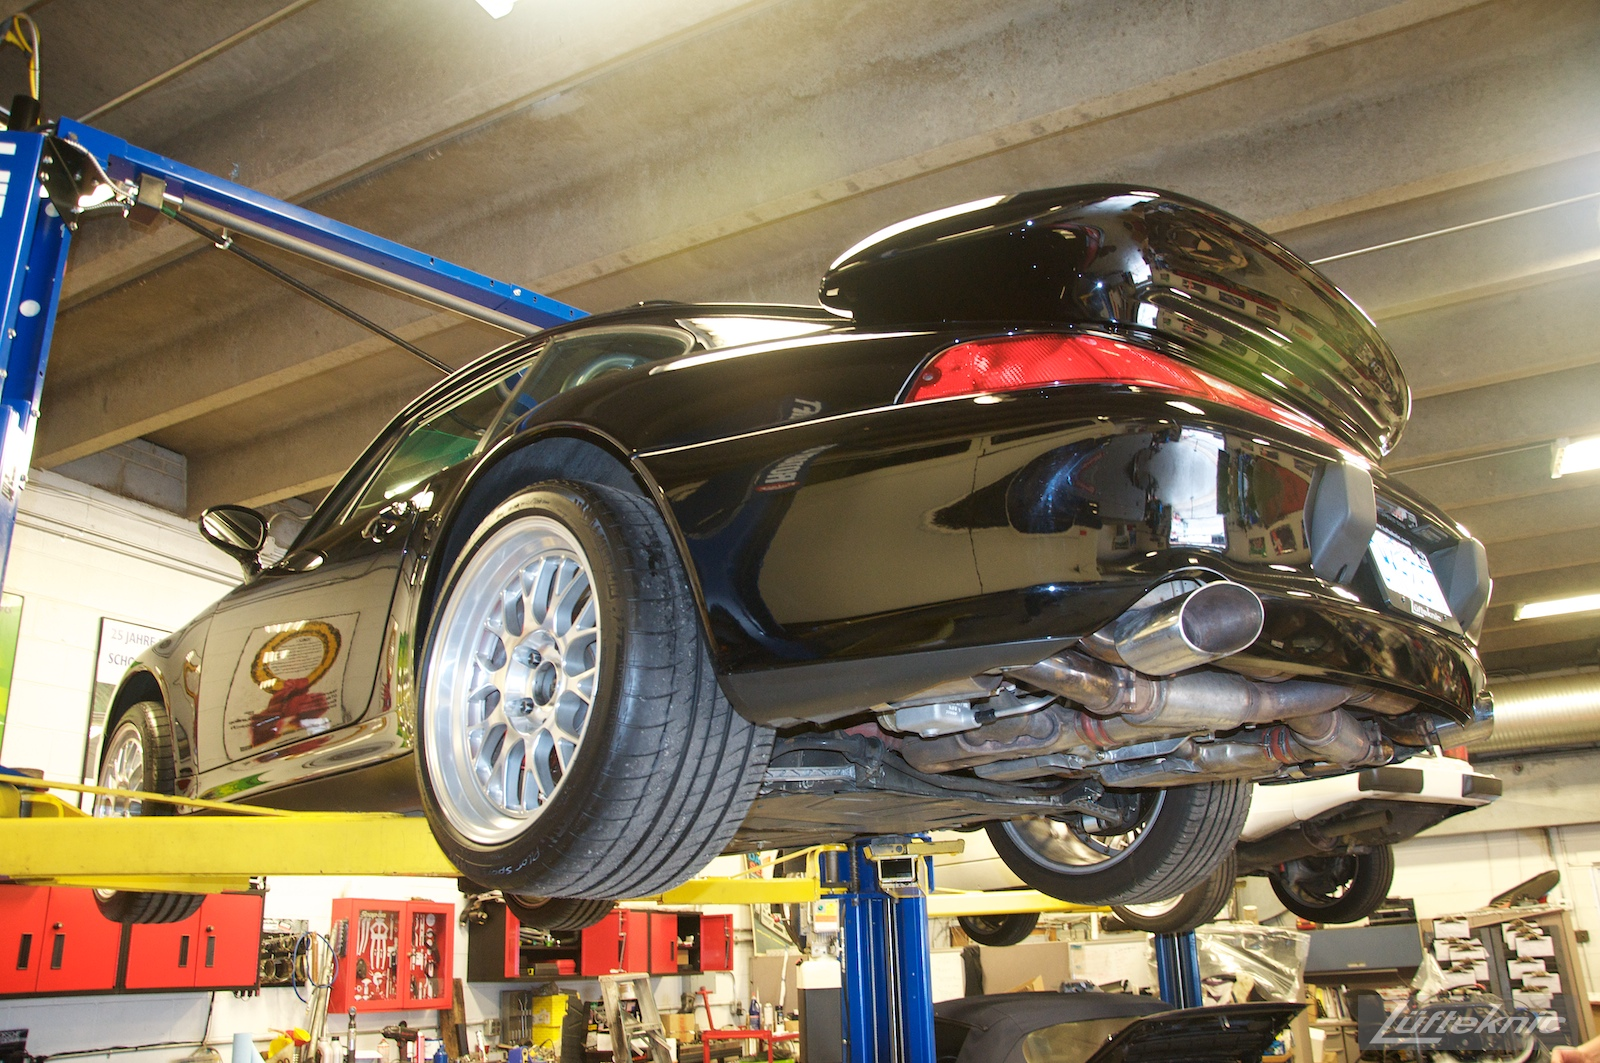 A 993 GT2 turbo conversion sits on a lift.